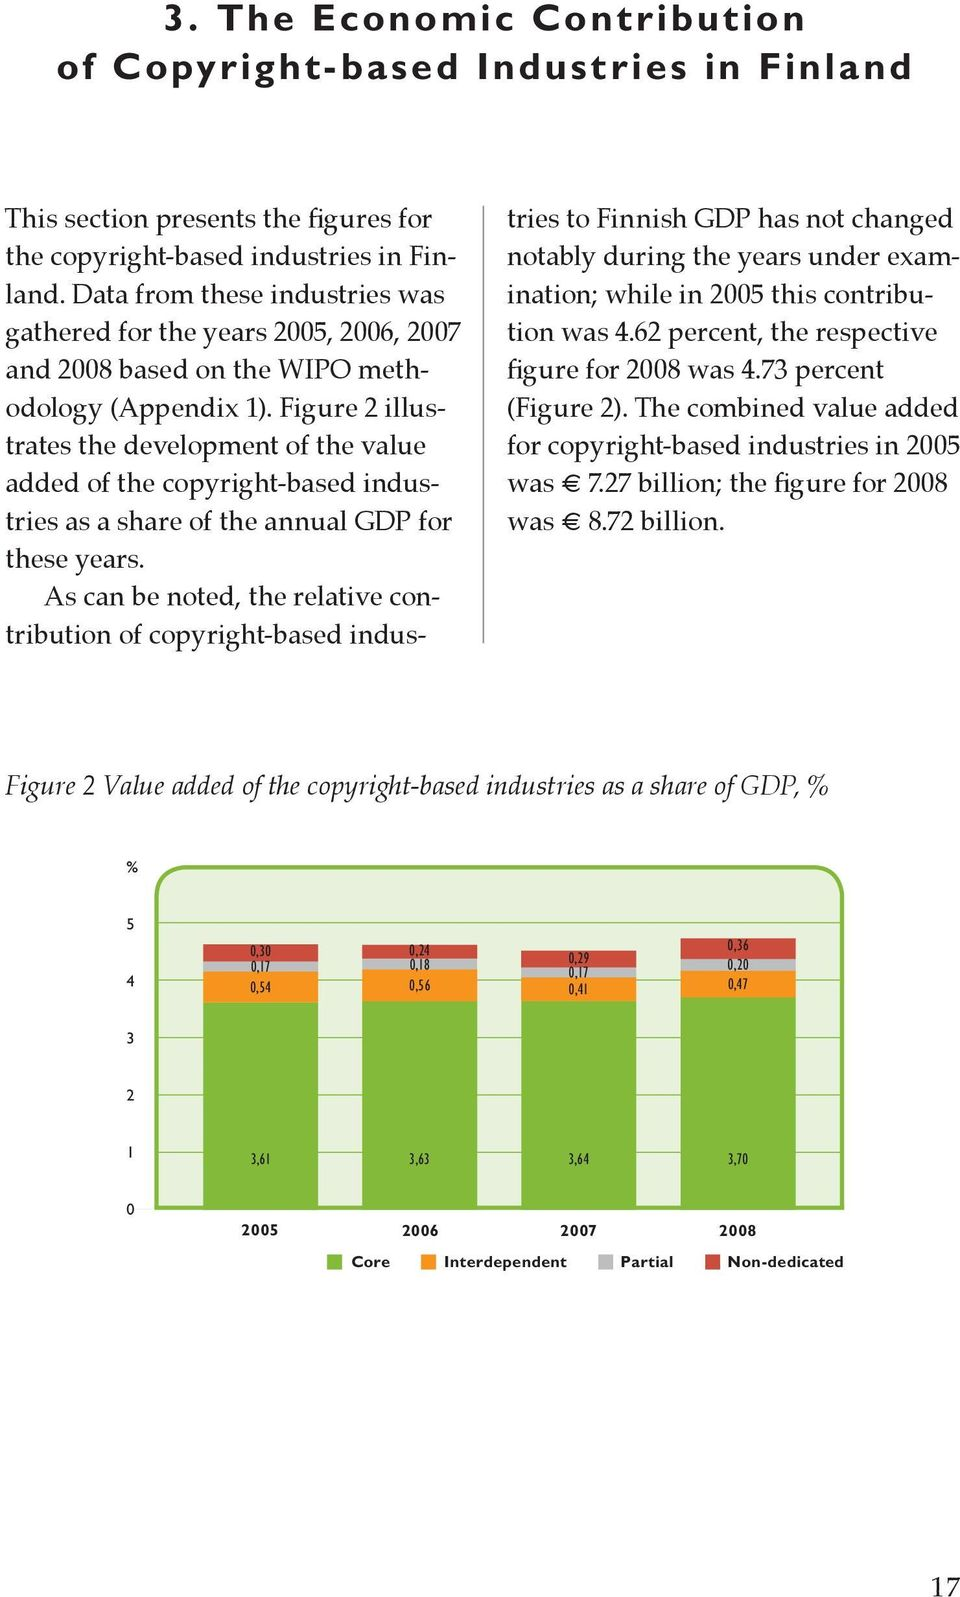 Figure 2 illustrates the development of the value added of the copyright-based industries as a share of the annual GDP for these years.